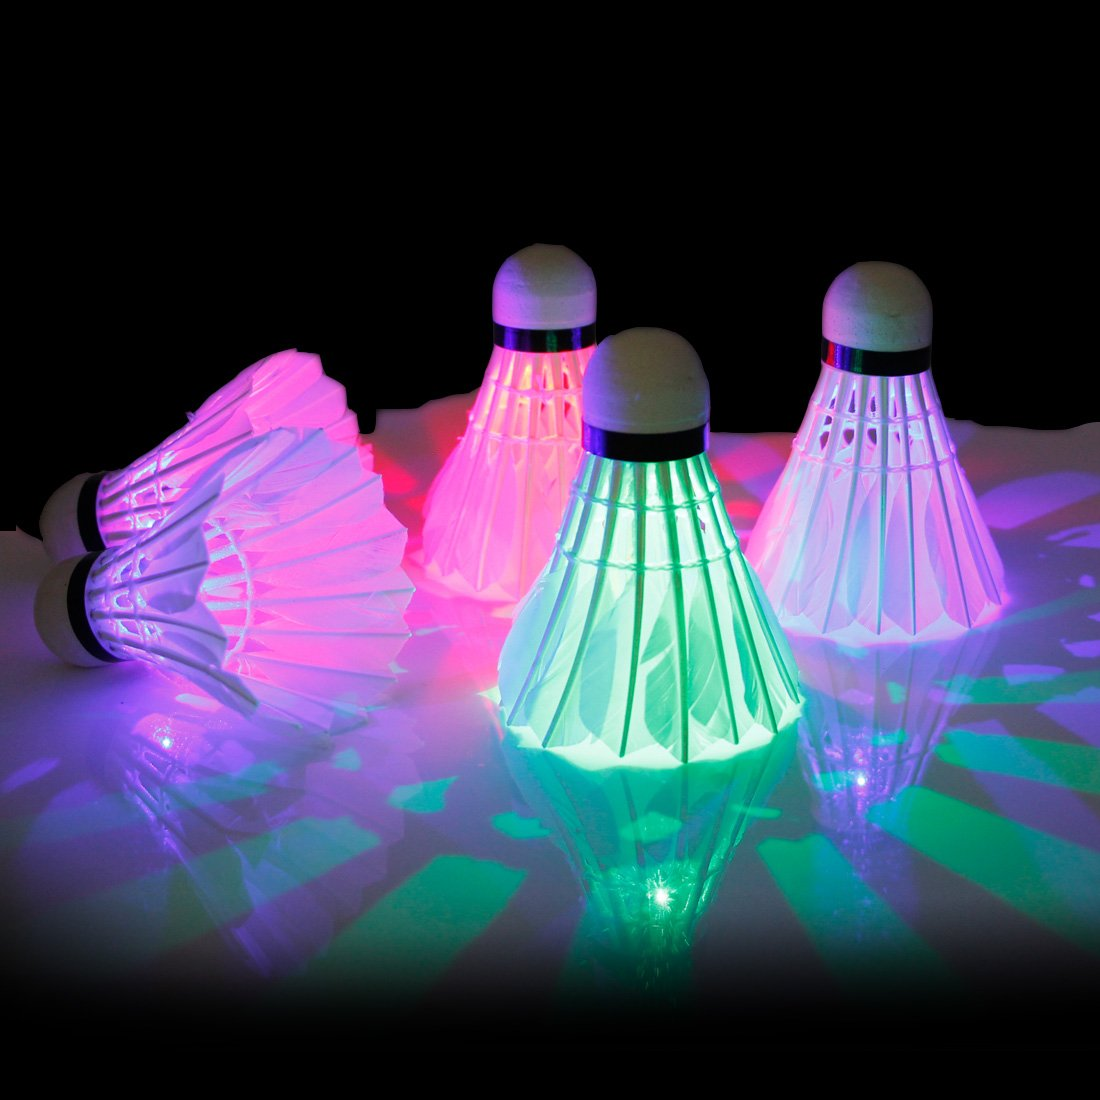 ESport 4 Pack Goose Feather Tournament Shuttle LED Badminton Shuttlecock Glow in The Dark Lighting Birdies for Enjoyable Night Time Badminton Outdoor & Indoor Sports Activities